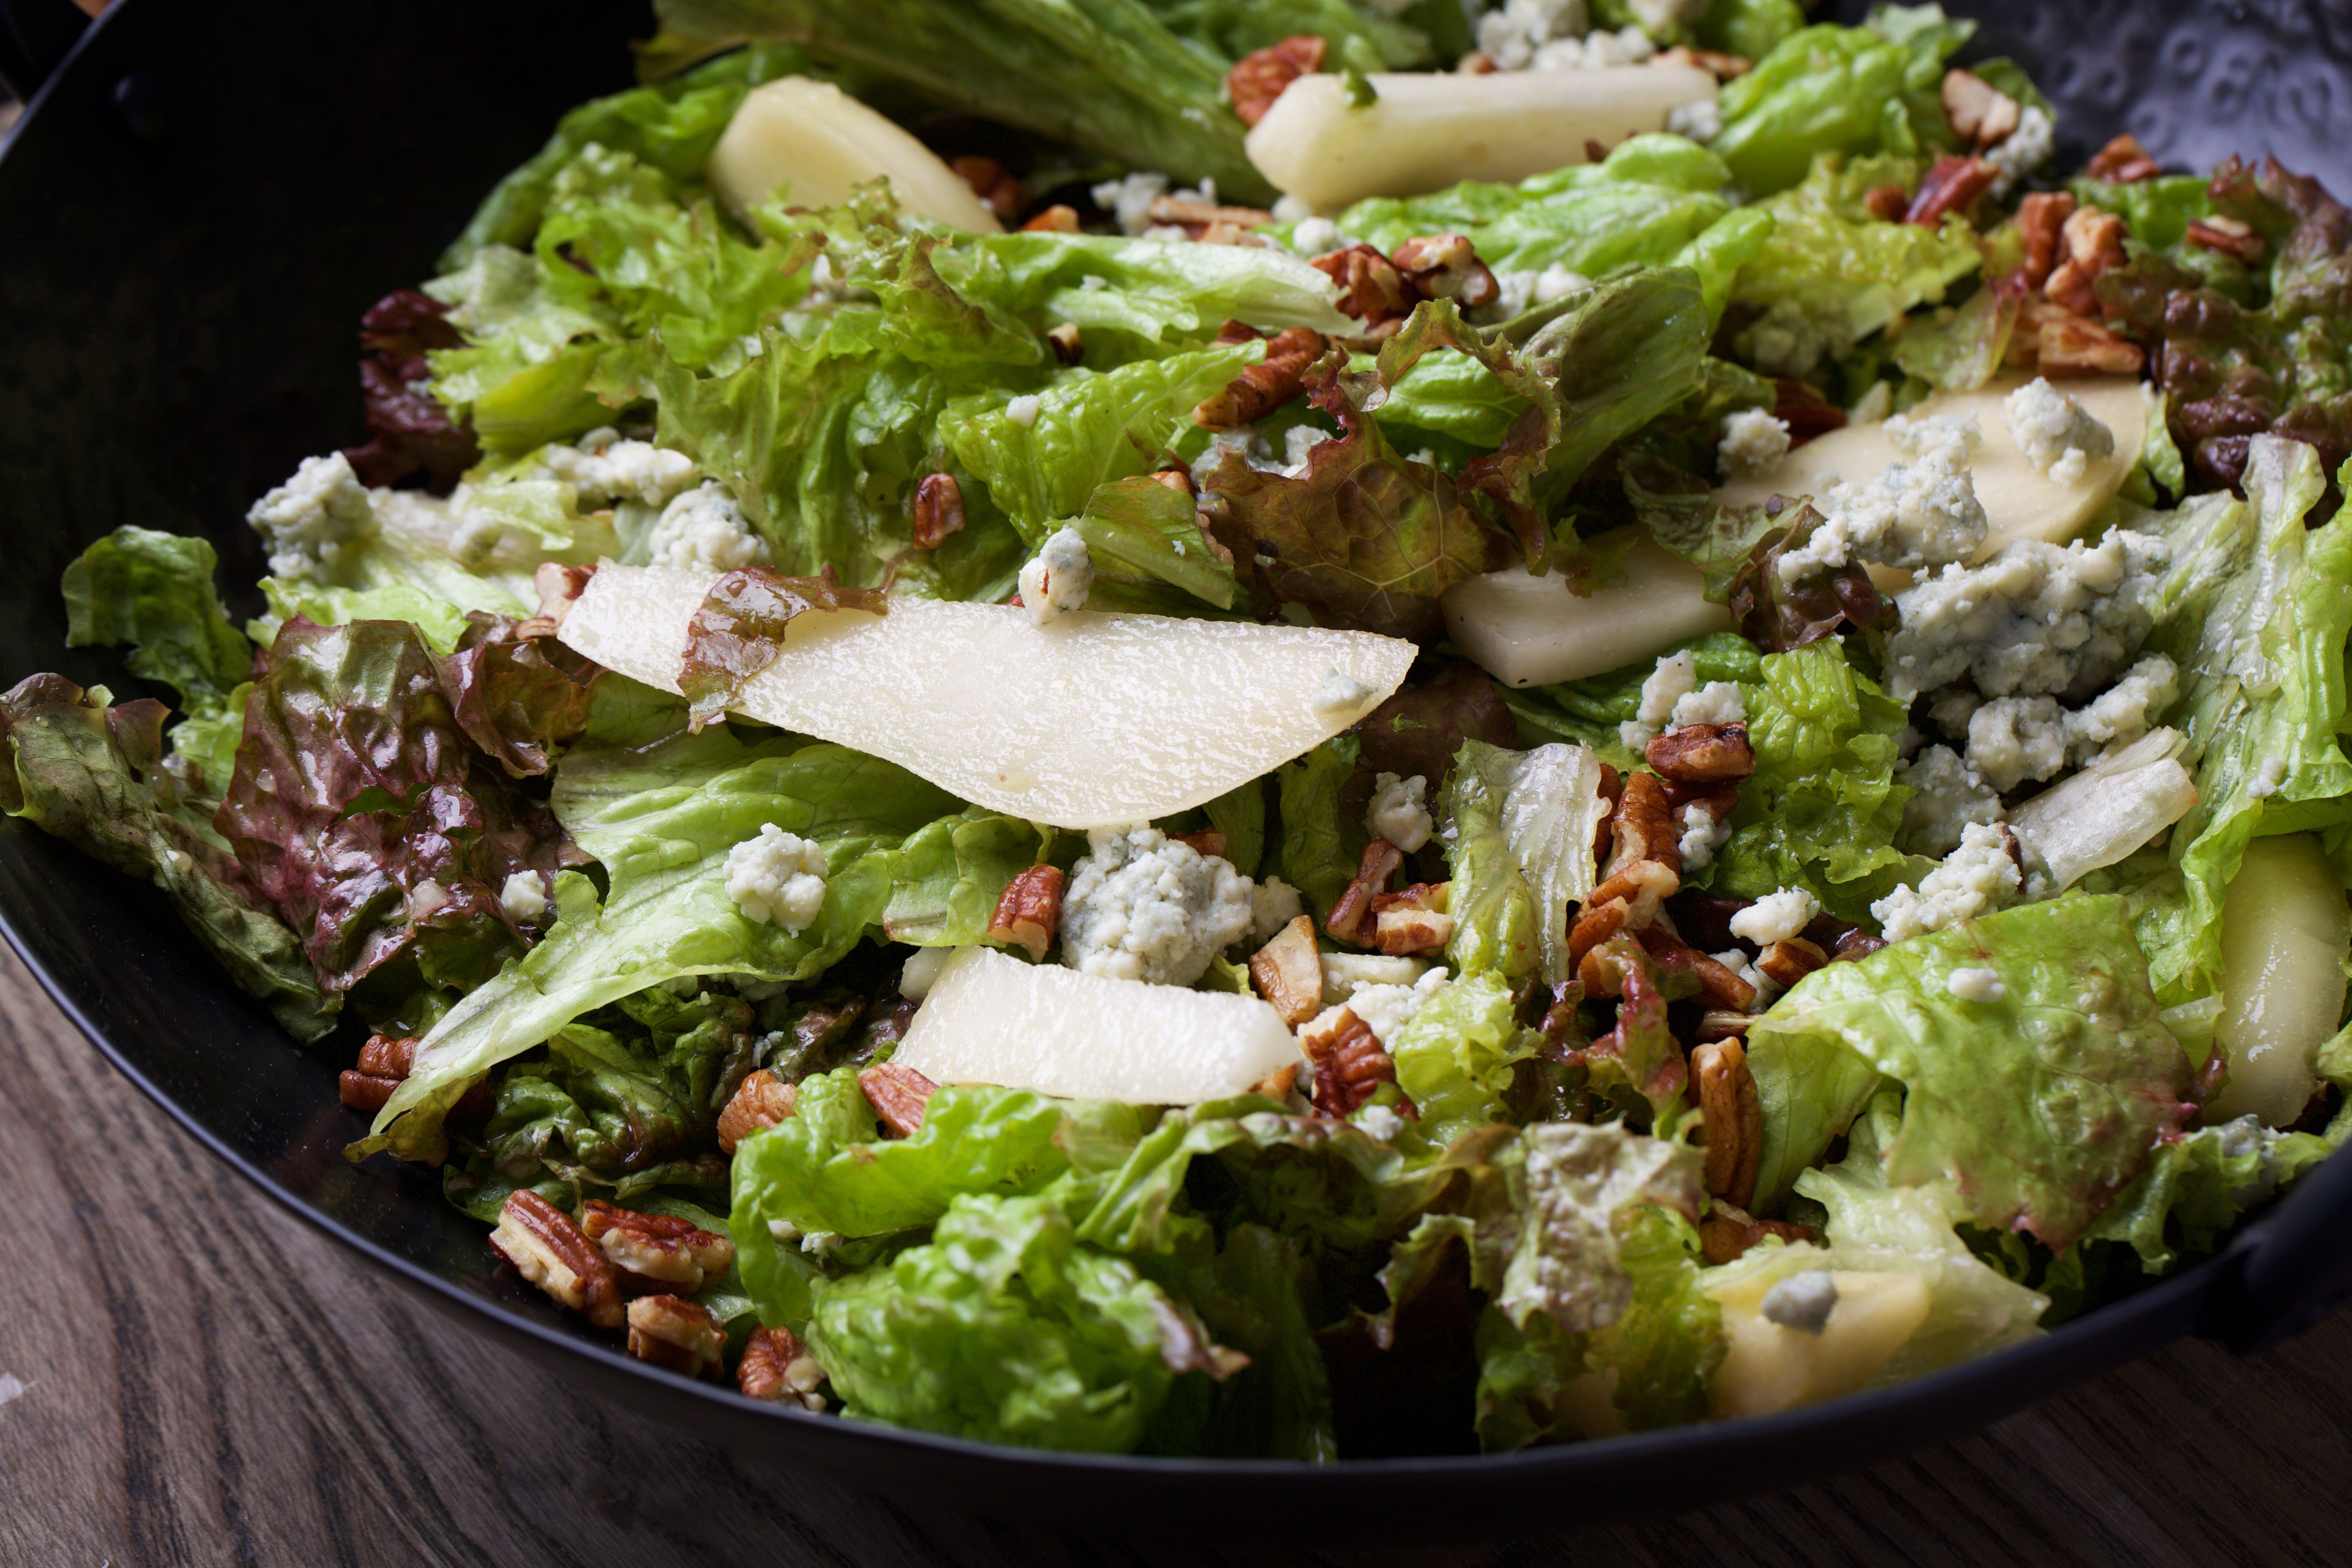 This simple salad will see you through the winter